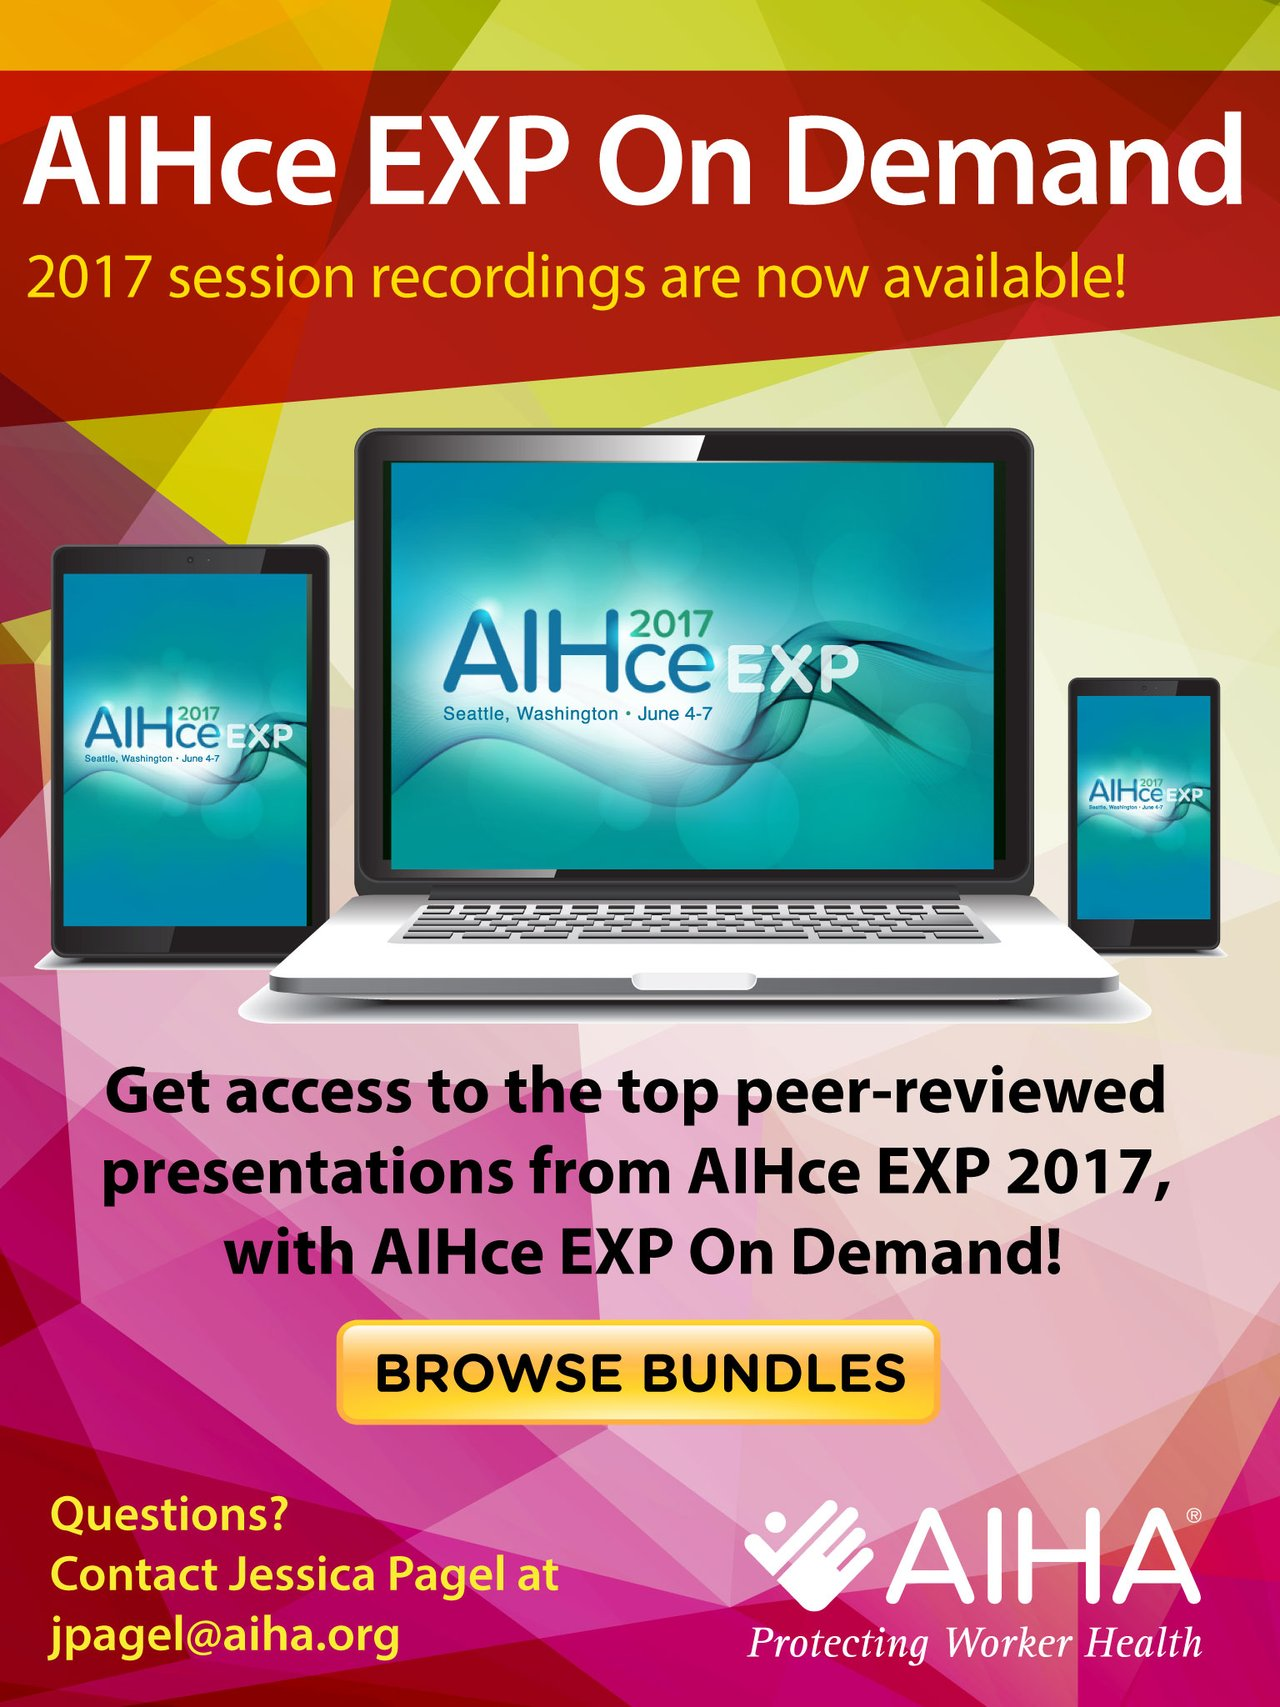 DigitalSynergistAd_tablet_2017November_AIHceEXP201